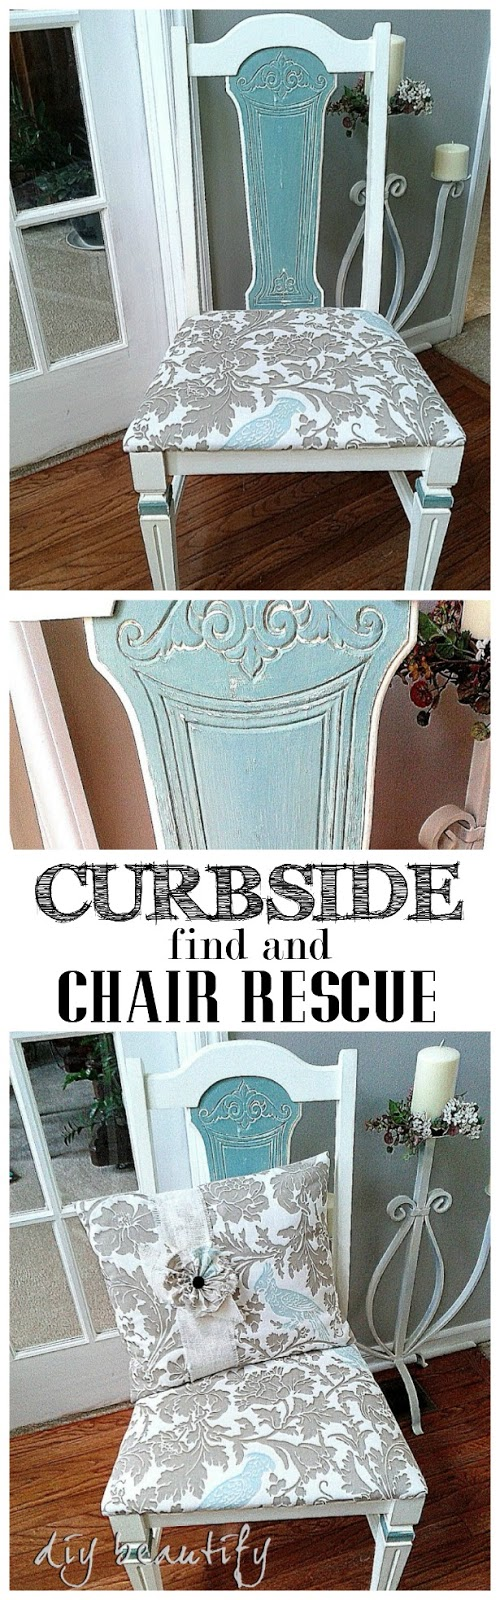 curbside chair rescue DIY beautify